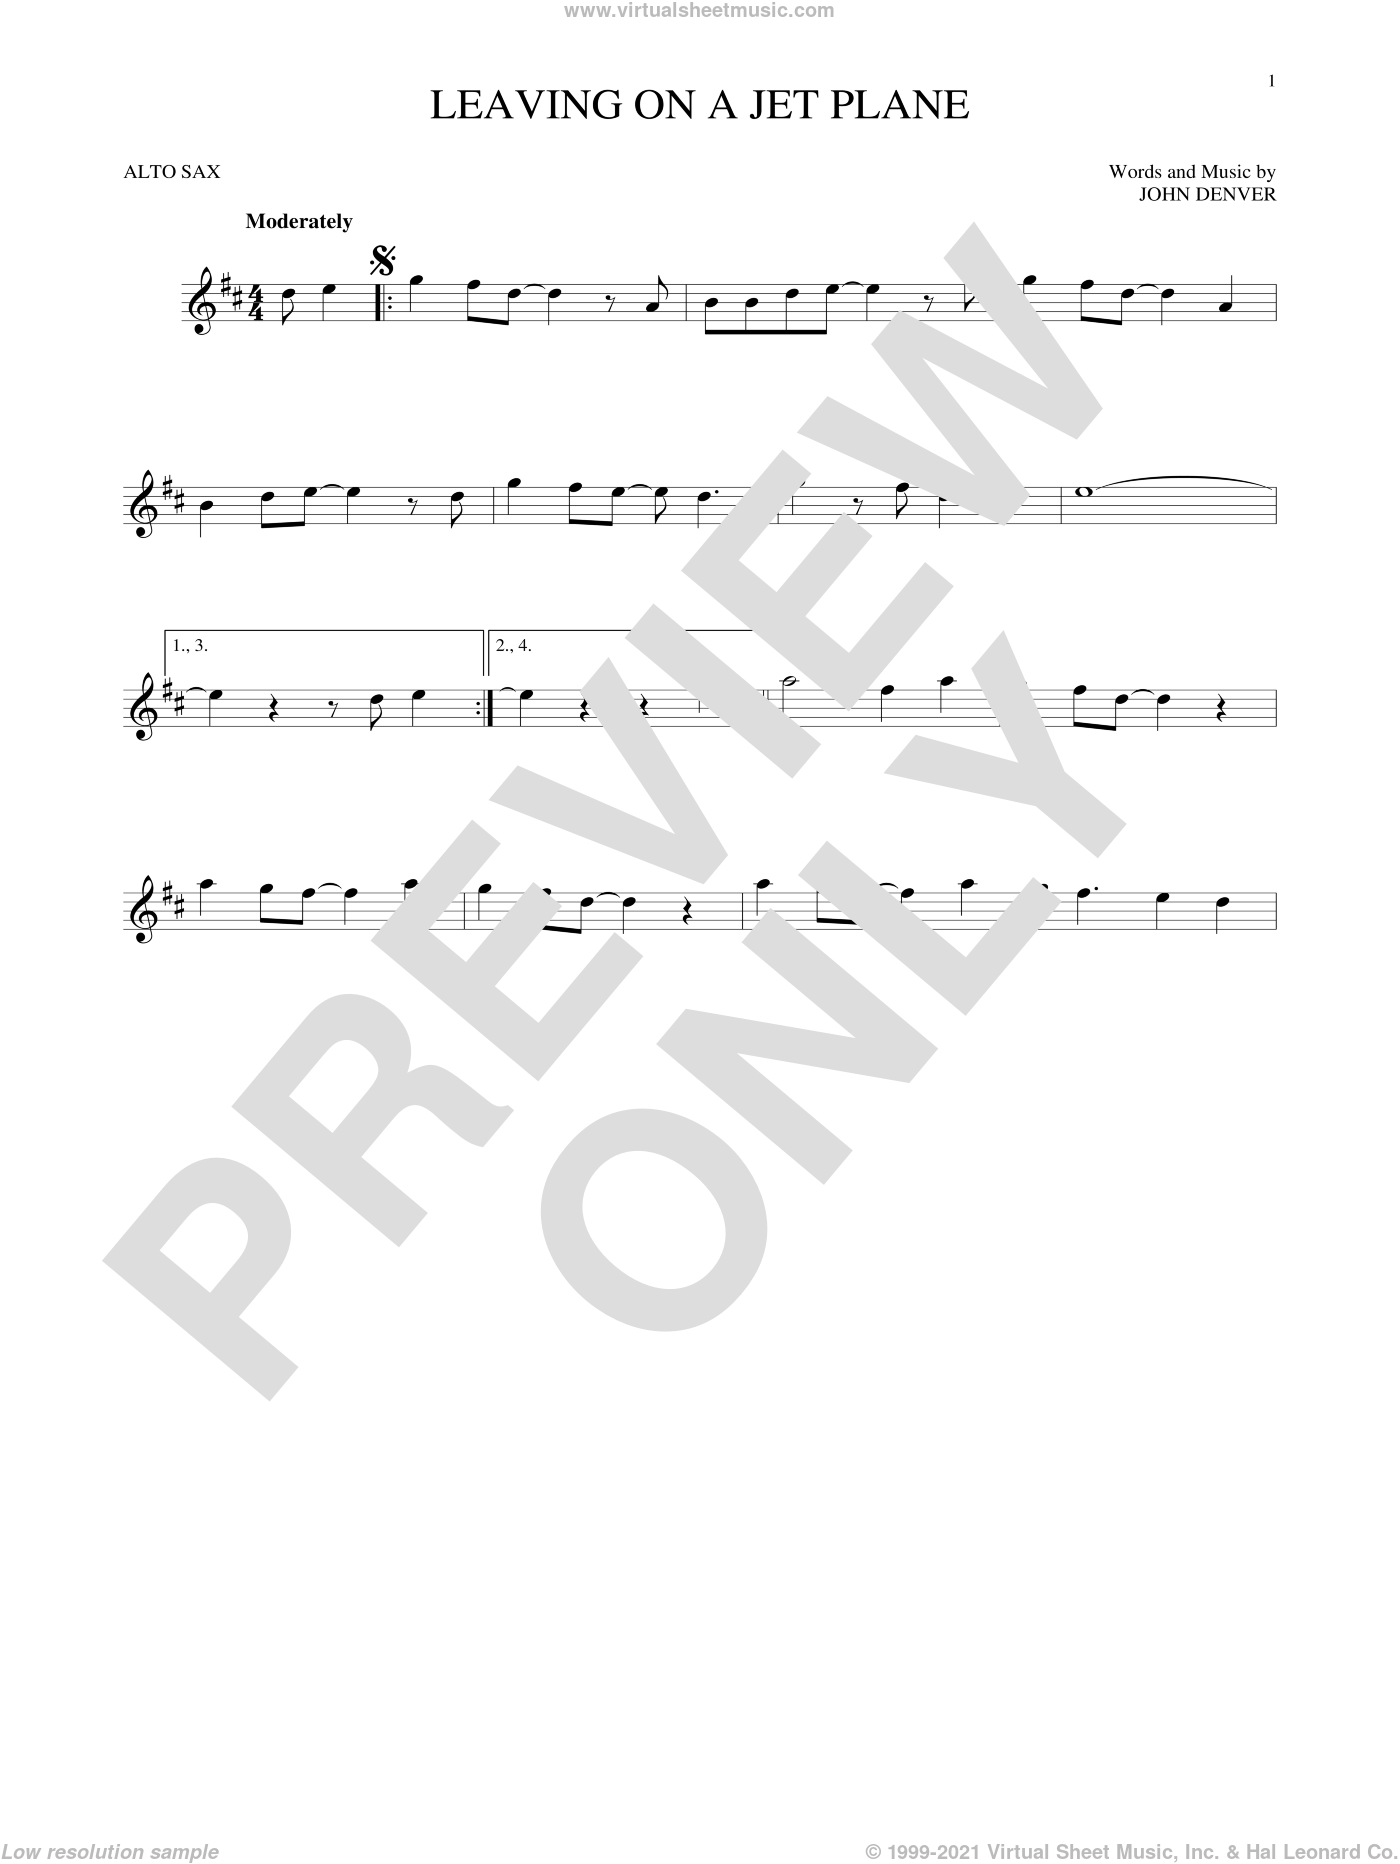 Leaving On A Jet Plane sheet music for alto saxophone solo ( Sax) by John Denver. Score Image Preview.